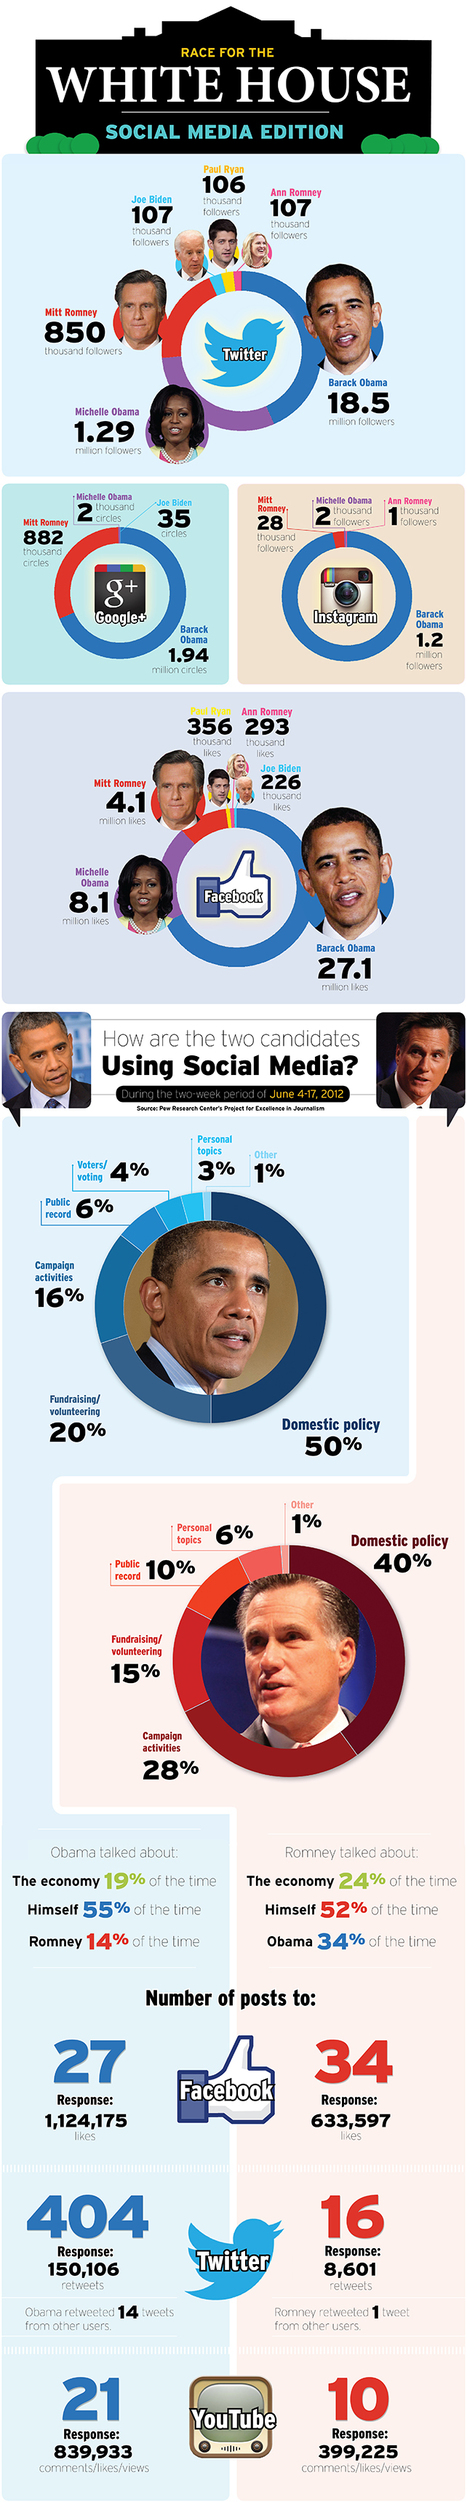 Infographic: How Obama, Romney (and Friends) Are Using Social Media | Obama-Romney | Scoop.it